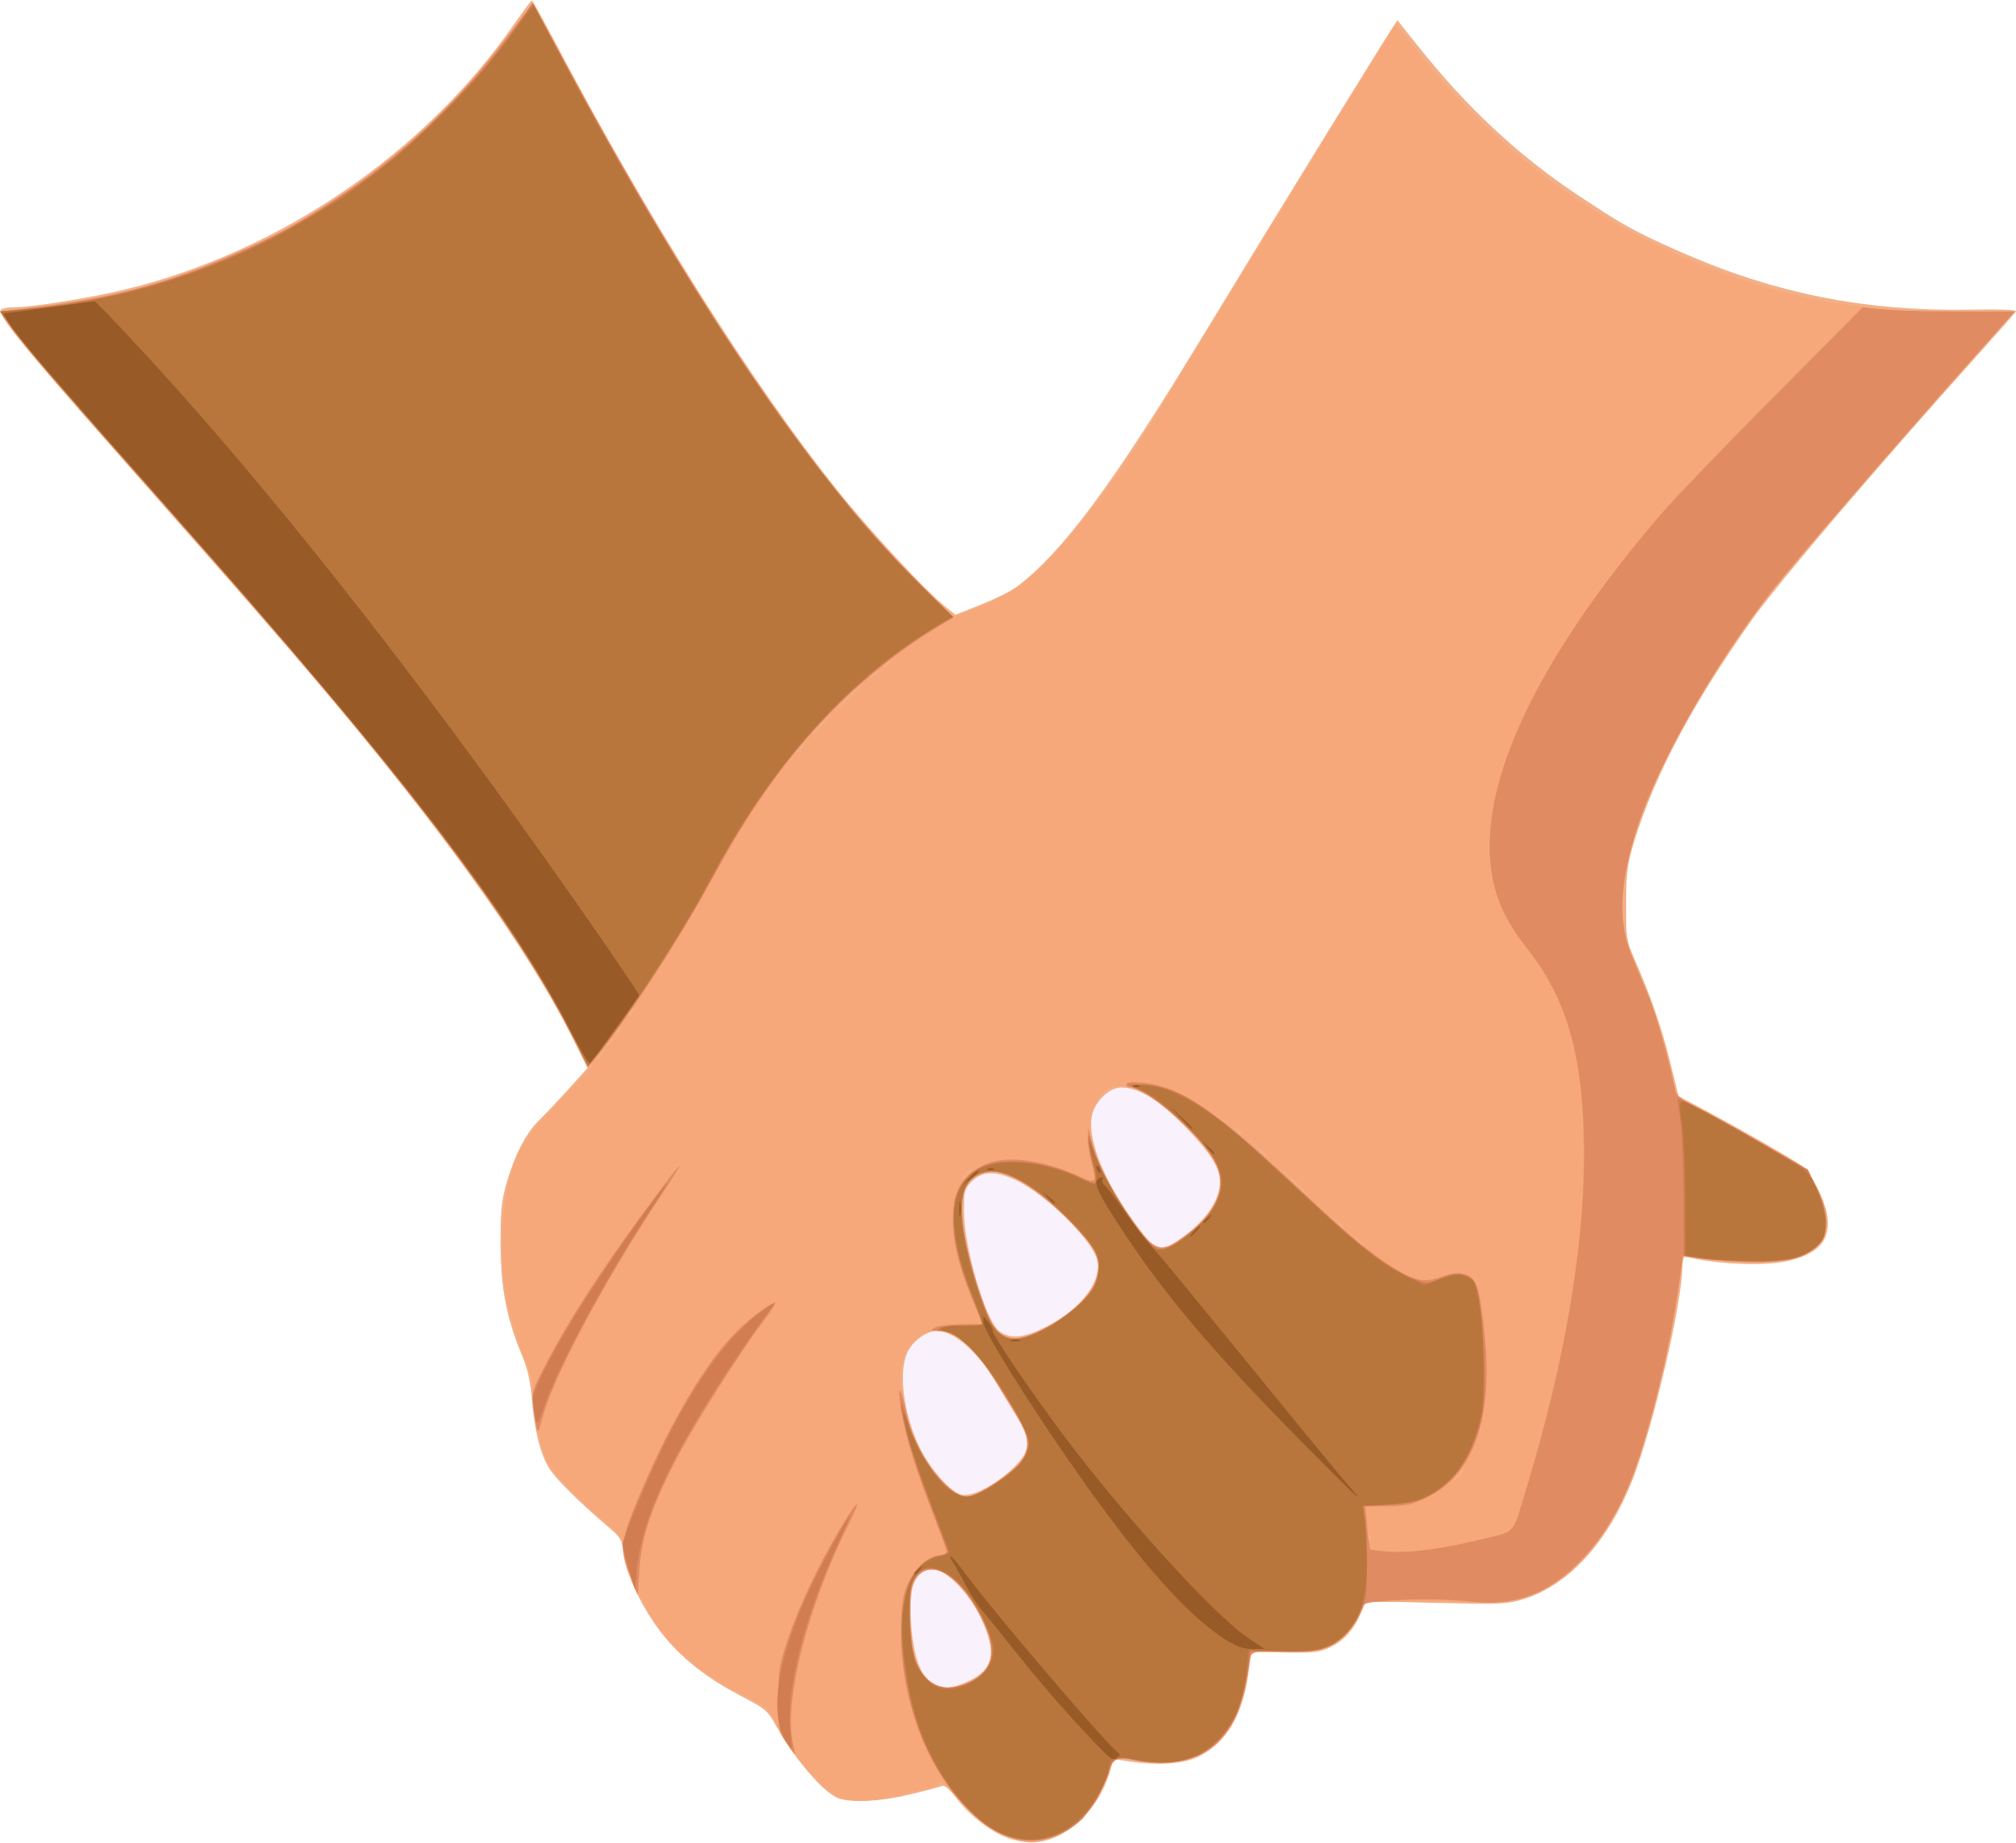 Kind clipart clasped hand. Holding hands big image